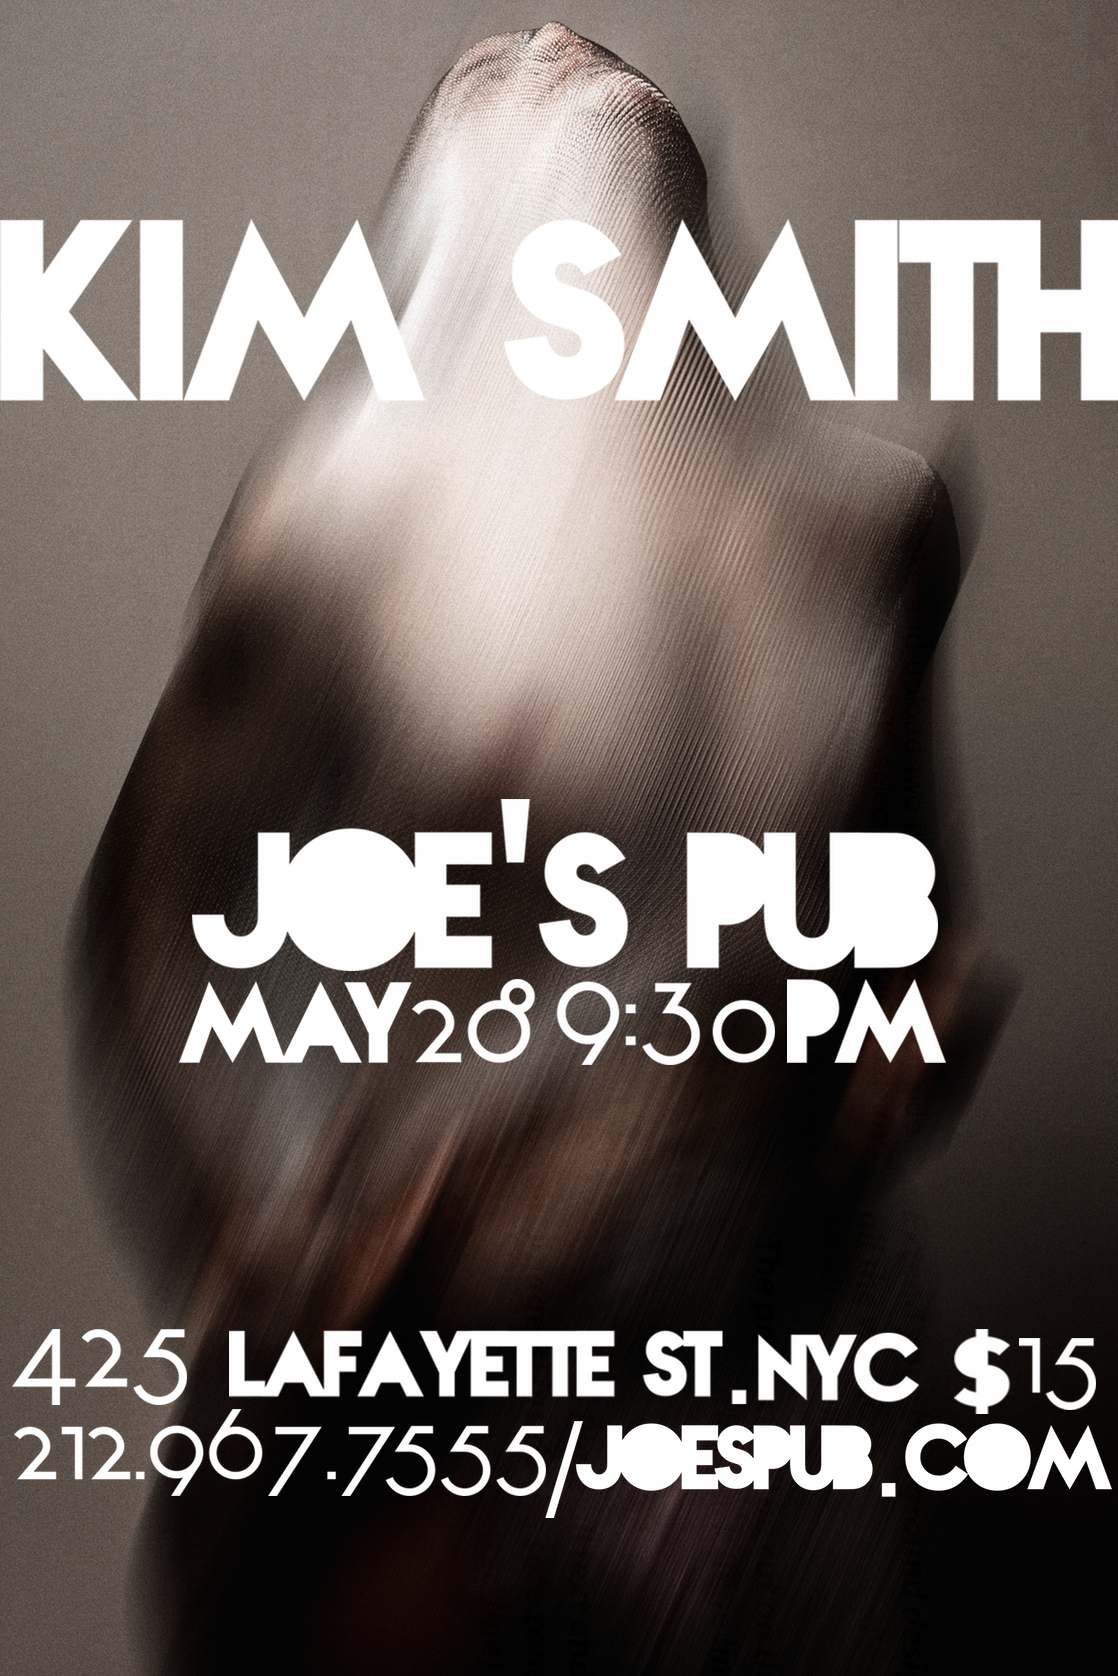 Kim Smith live at Joe's Pub NYC, May 28, 9:30PM